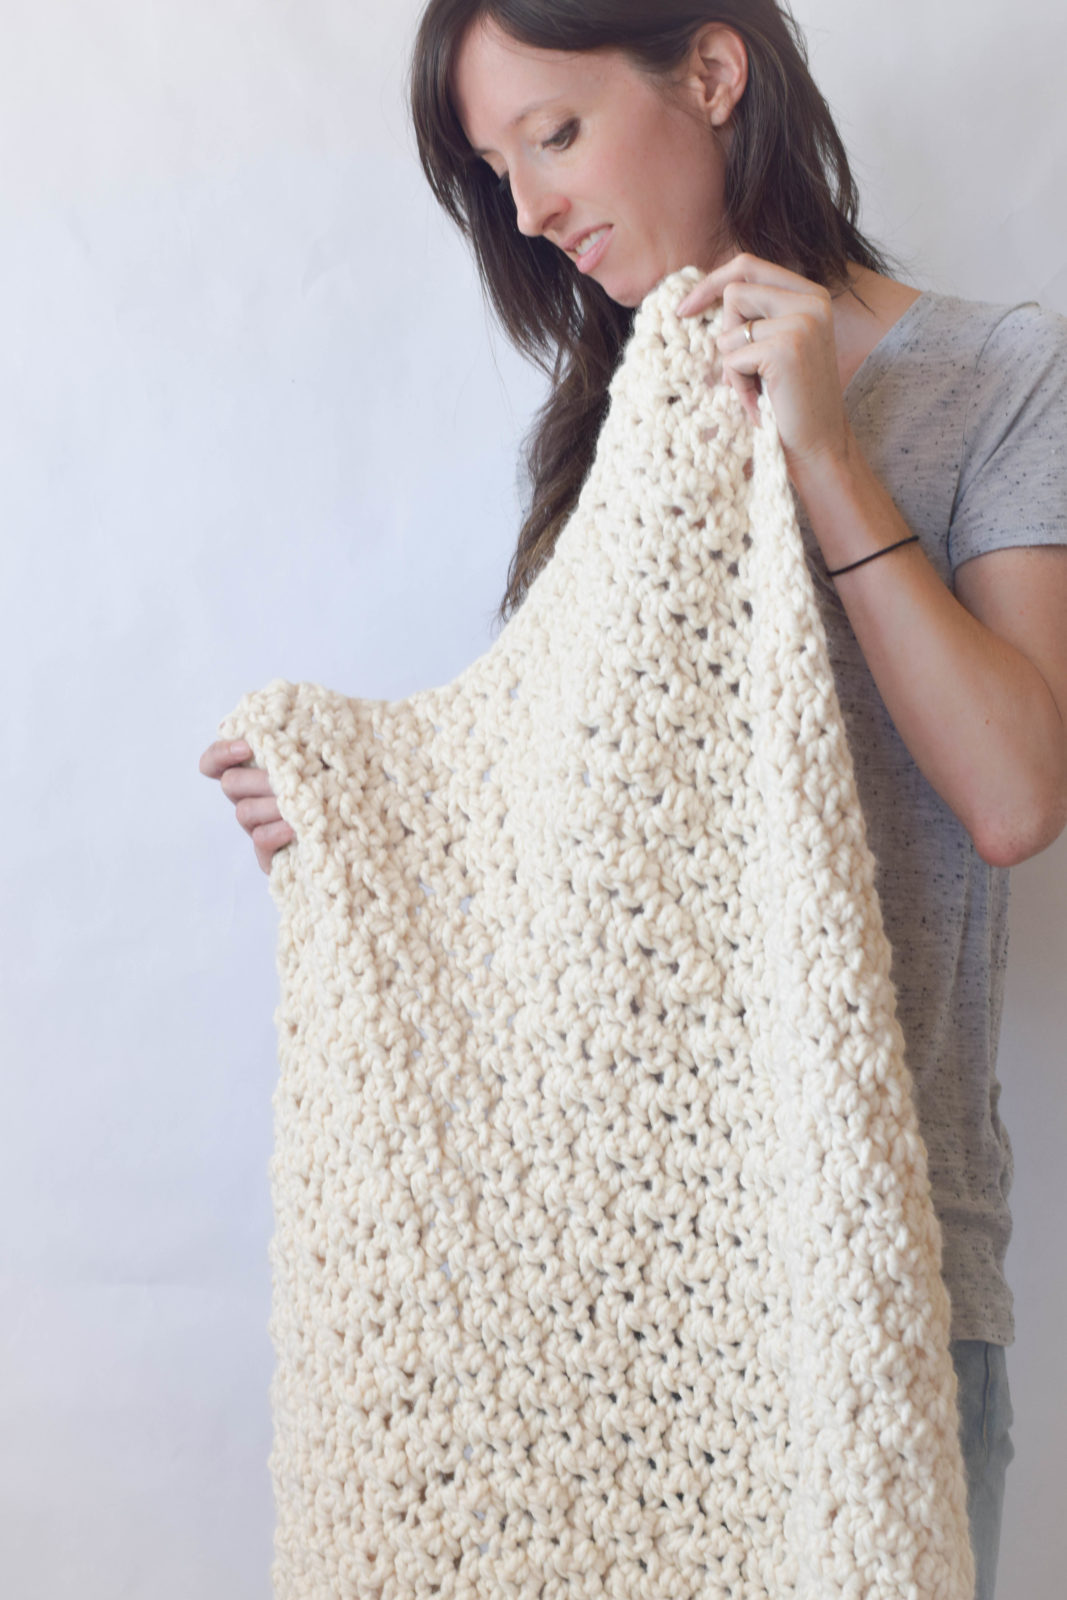 Free Crochet Pattern For Chunky Blanket : Chunky Icelandic Crochet Blanket Pattern ? Mama In A Stitch